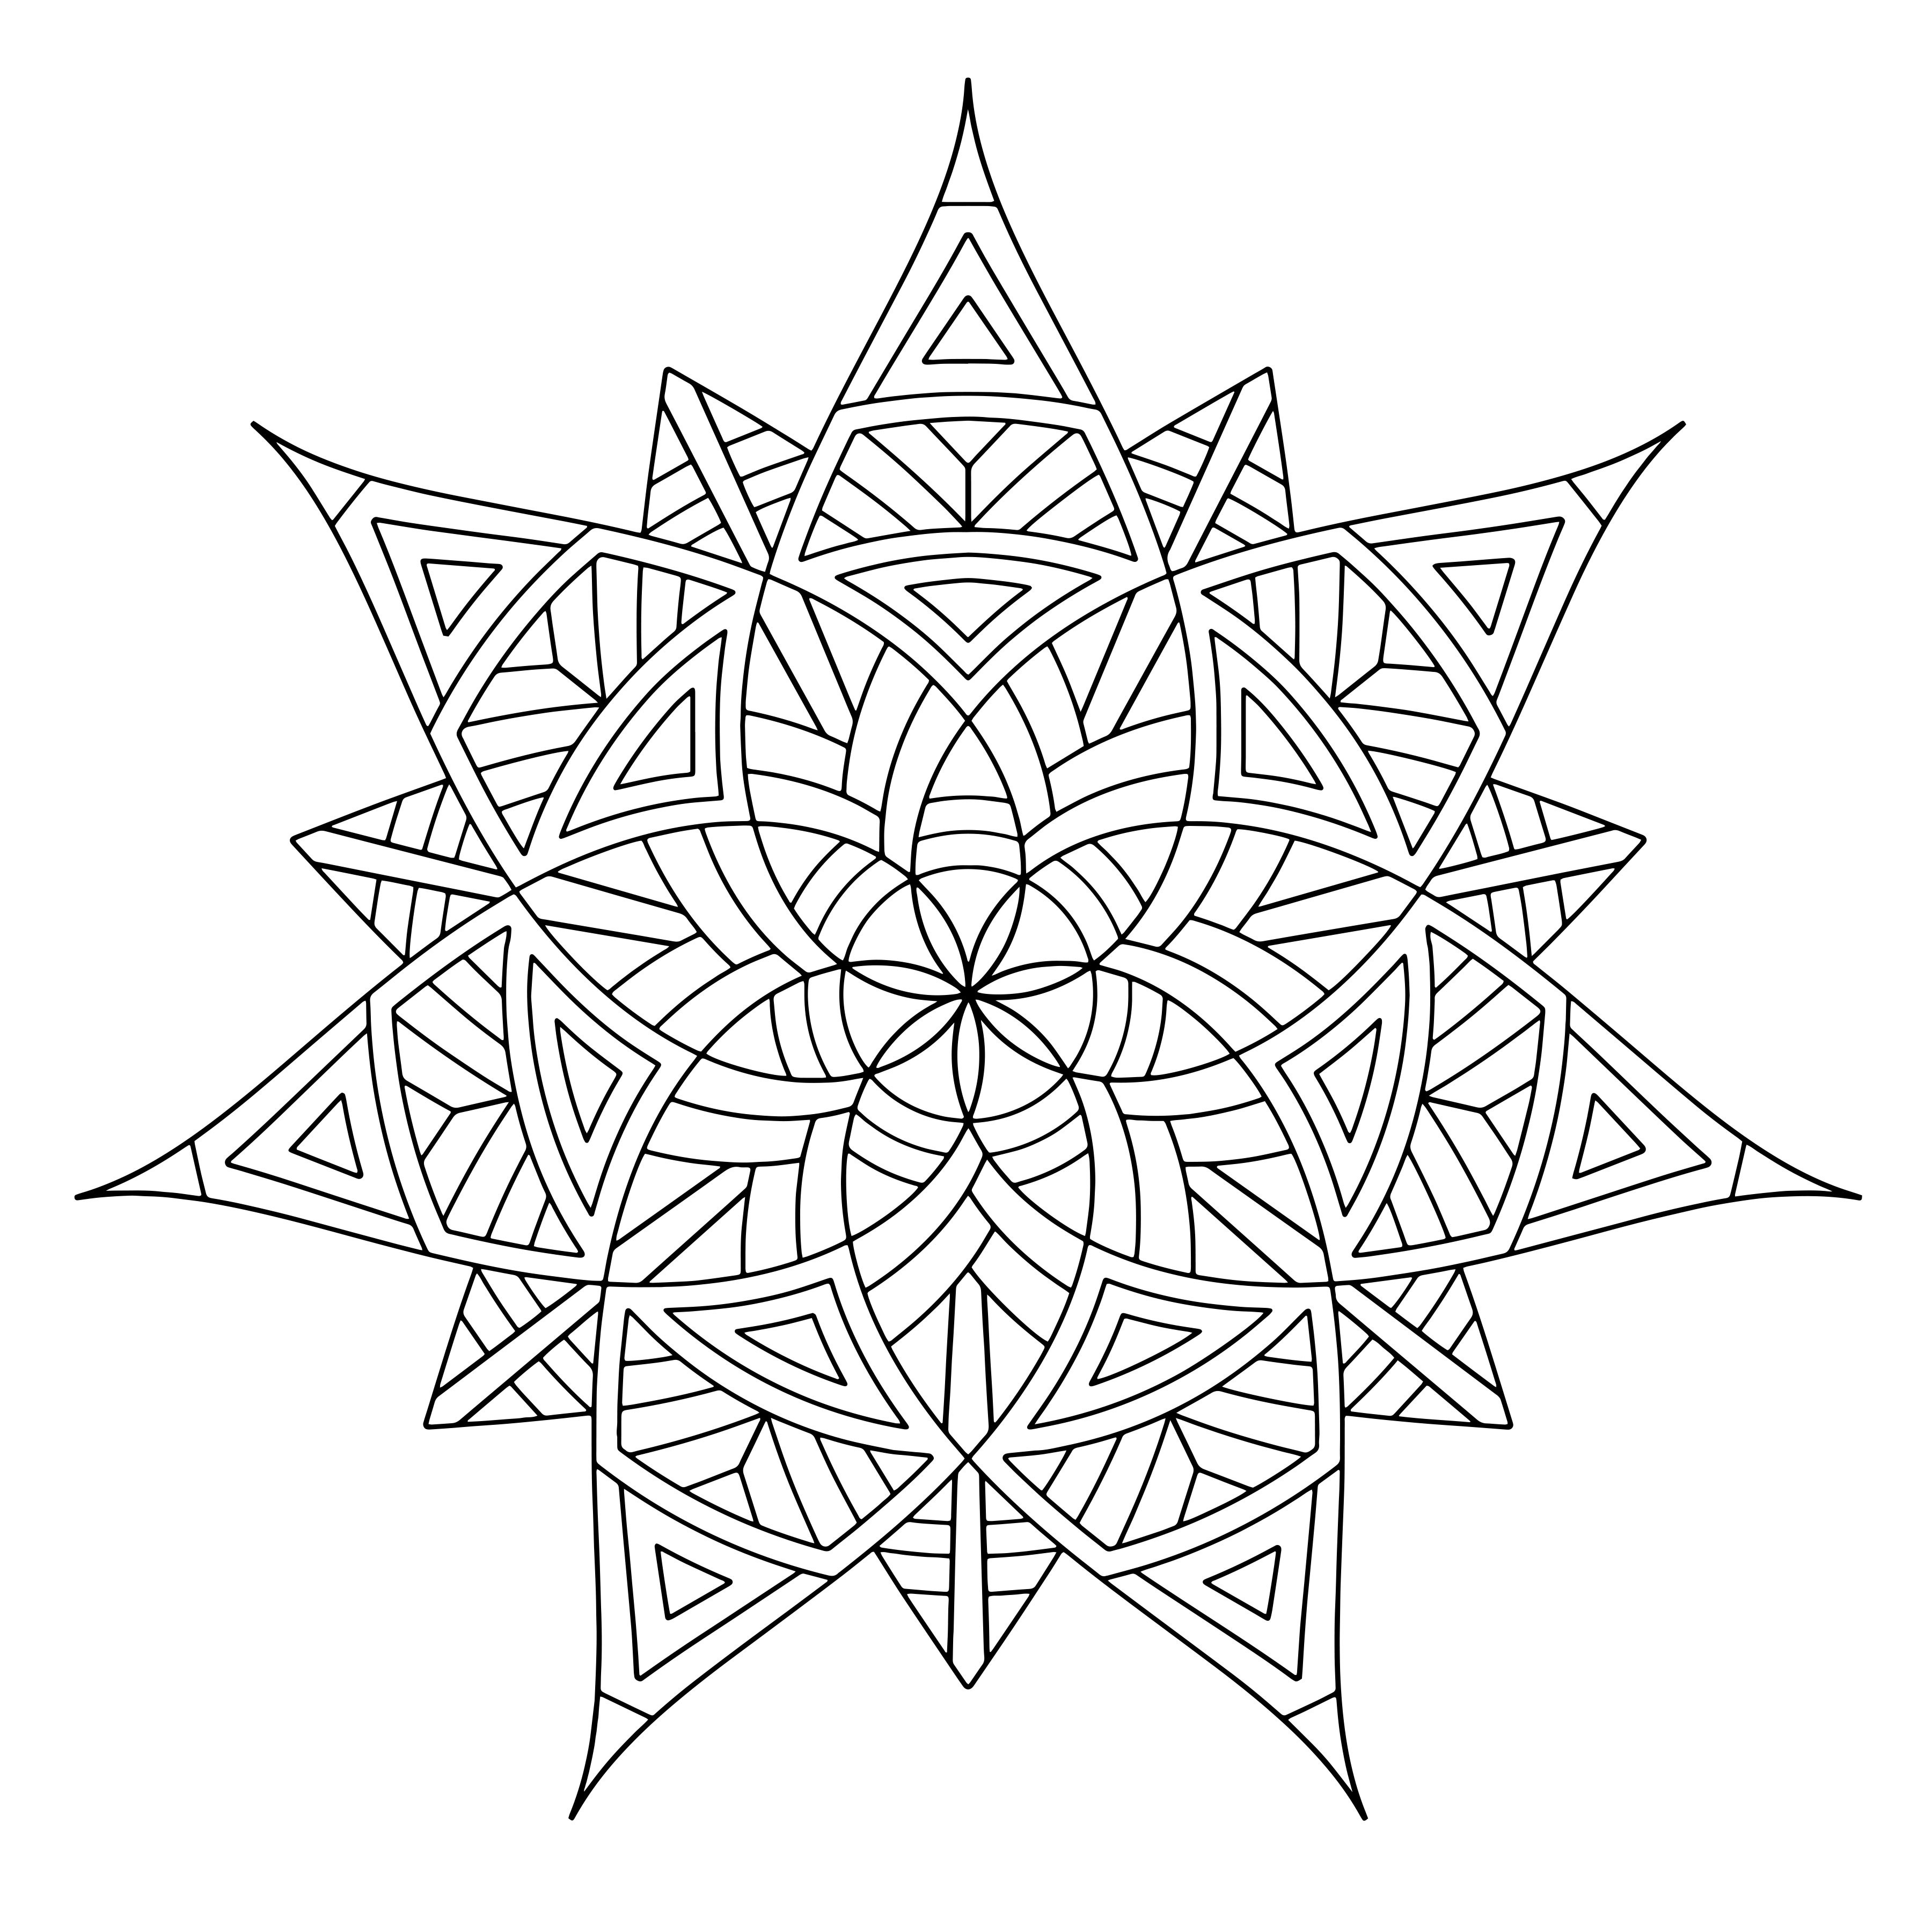 3600x3600 3d Geometric Shapes Coloring Pages Free Draw To Color